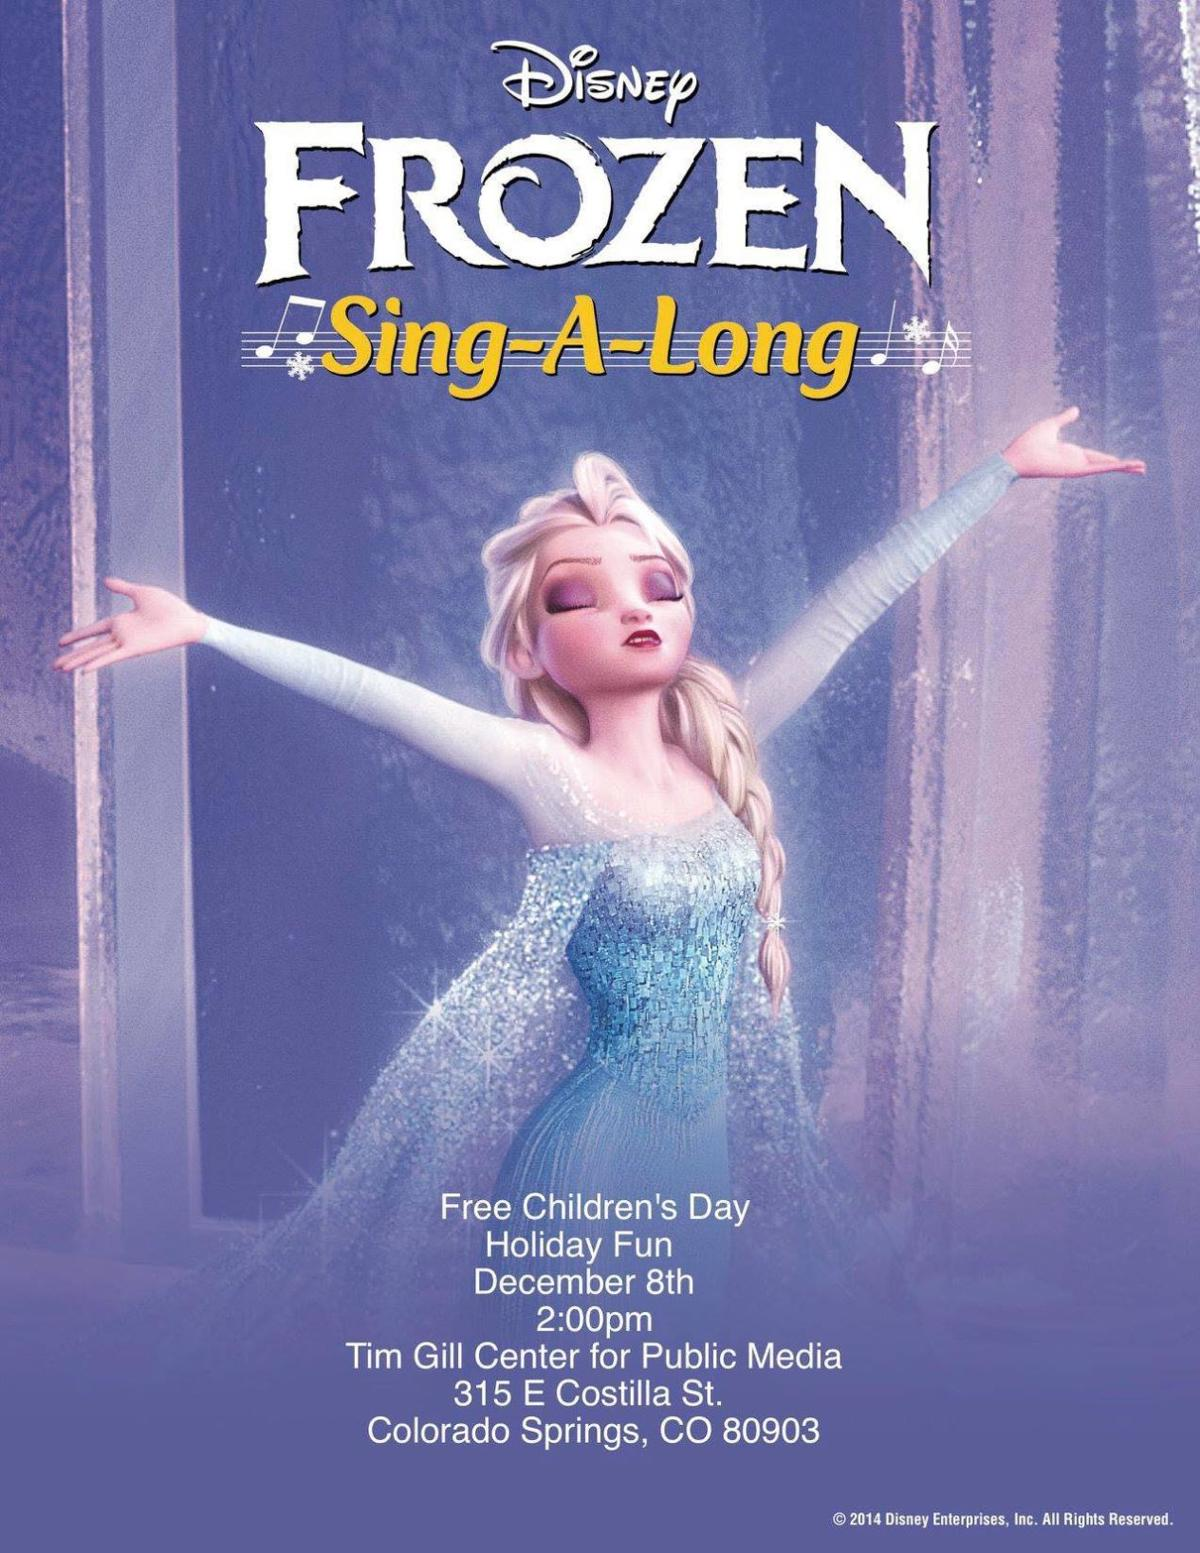 Childrens day IFF  Frozen singalong poster.jpg